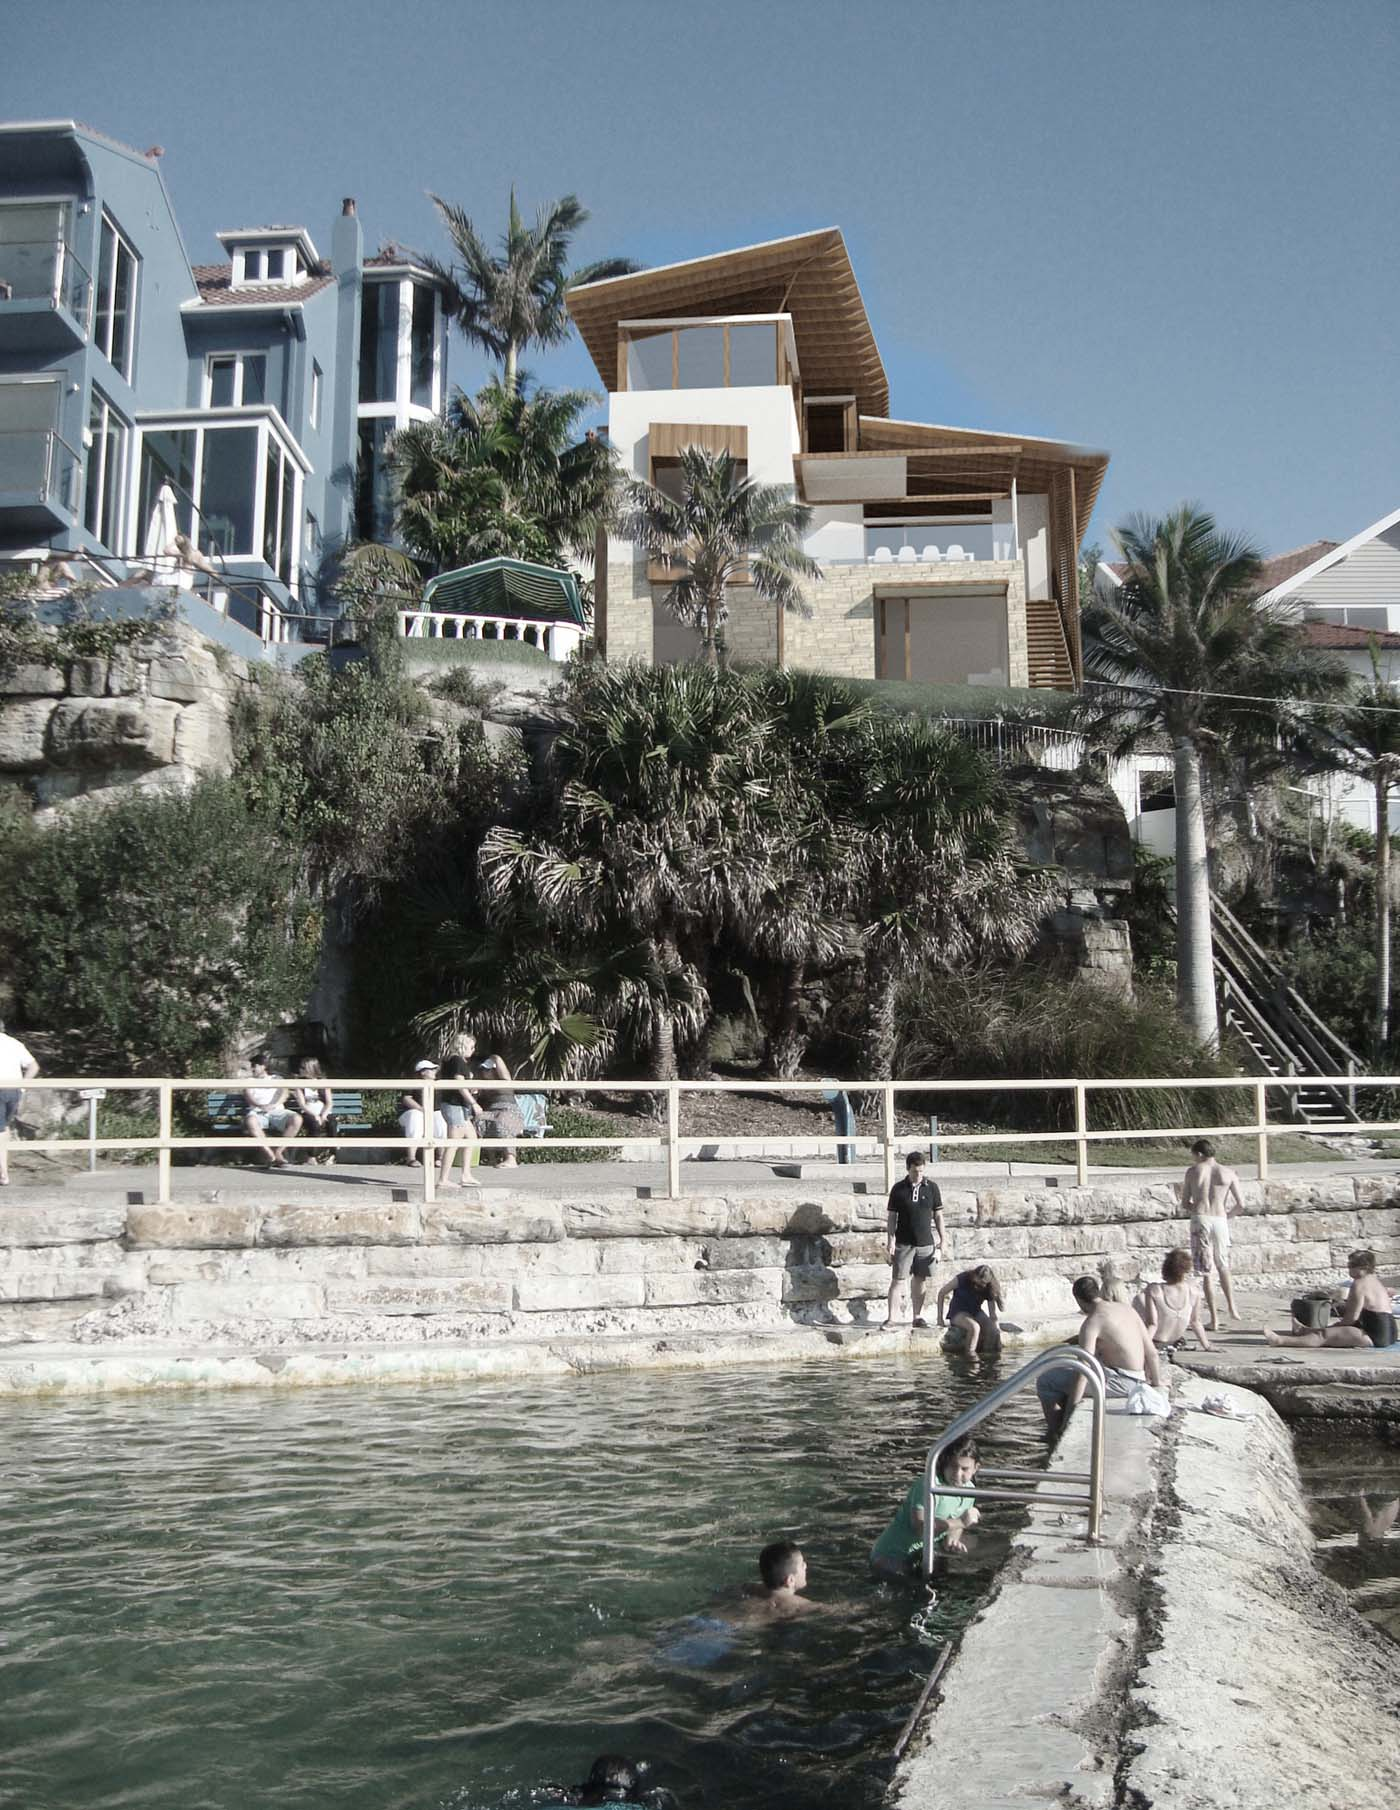 The Bower by Sam Crawford Architects, photoshop render view from marine pools in Cabbage Tree Bay